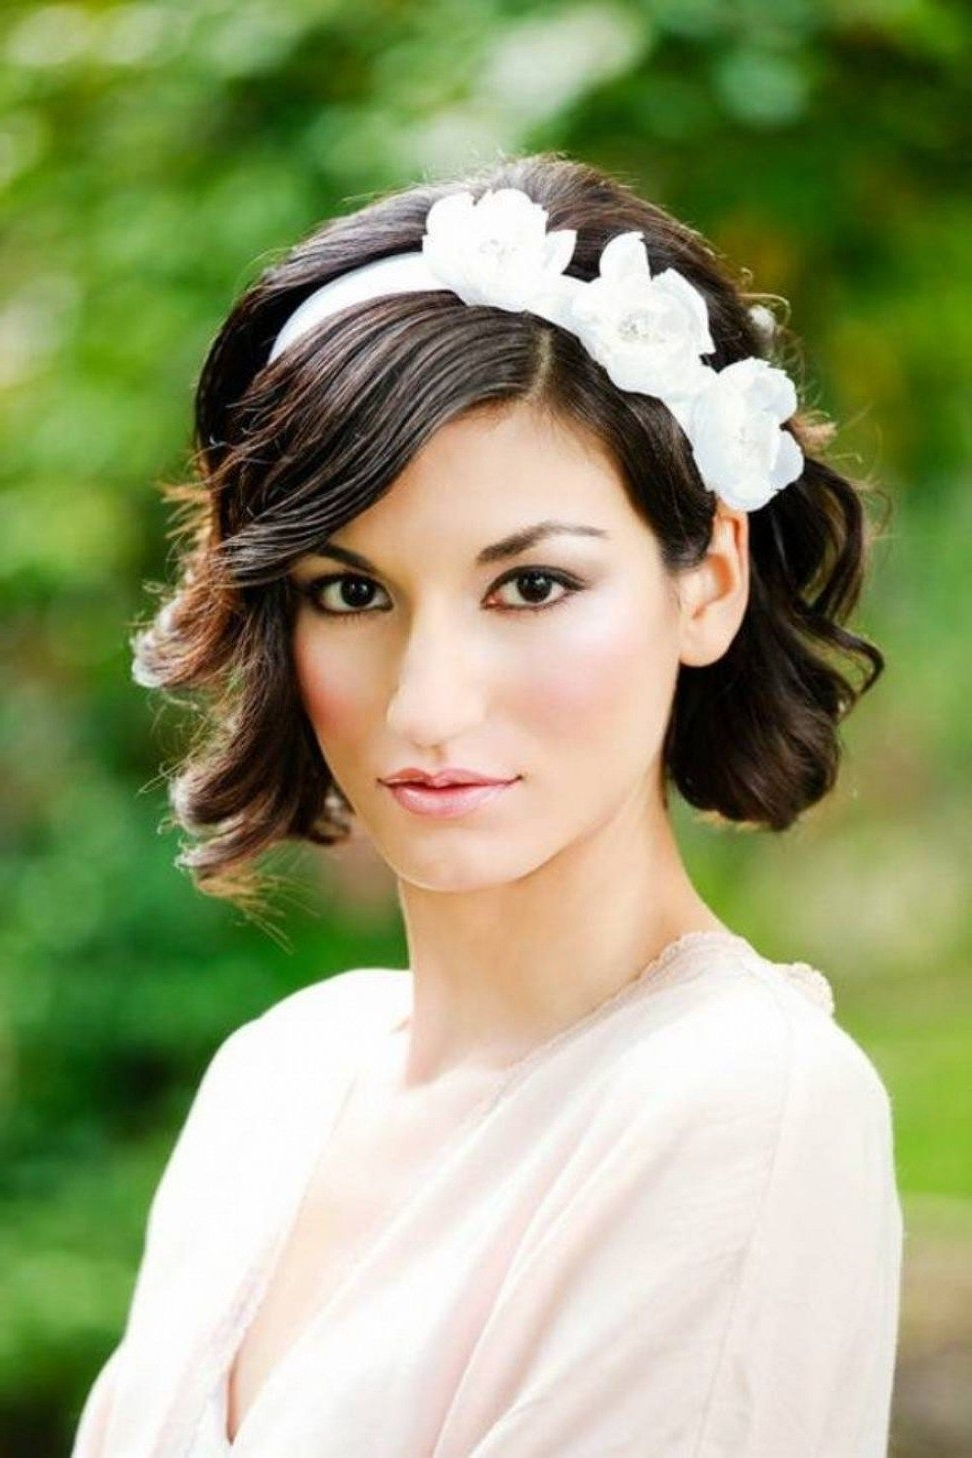 30 Beautiful Elegant Short Hairstyles For Weddings (View 3 of 15)